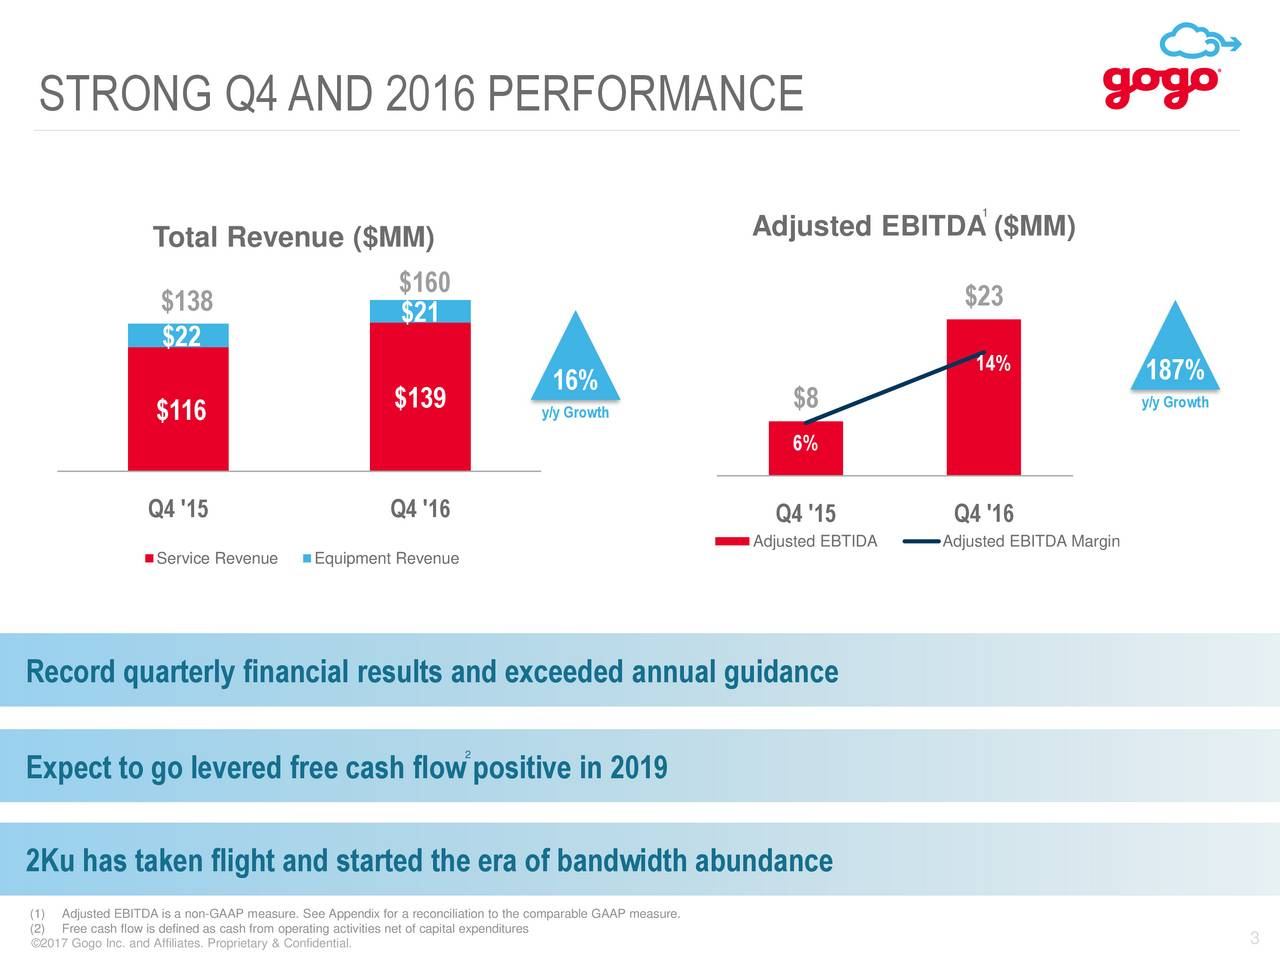 1 Total Revenue ($MM) Adjusted EBITDA ($MM) $160 $138 $21 $23 $22 16% 14% 187% $139 $8 y/y Growth $116 y/y Growth 6% Q4 '15 Q4 '16 Q4 '15 Q4 '16 Adjusted EBTIDA Adjusted EBITDA Margin Service RevenueEquipment Revenue Record quarterly financial results and exceeded annual guidance 2 Expect to go levered free cash flow positive in 2019 2Ku has taken flight and started the era of bandwidth abundance (1) Adjusted EBITDA is a non-GAAP measure. See Appendix for a reconciliation to the comparable GAAP measure. (2017 Gogo Inc. and Affiliates. Proprietary & Confidential.ies net of capital expenditures 3